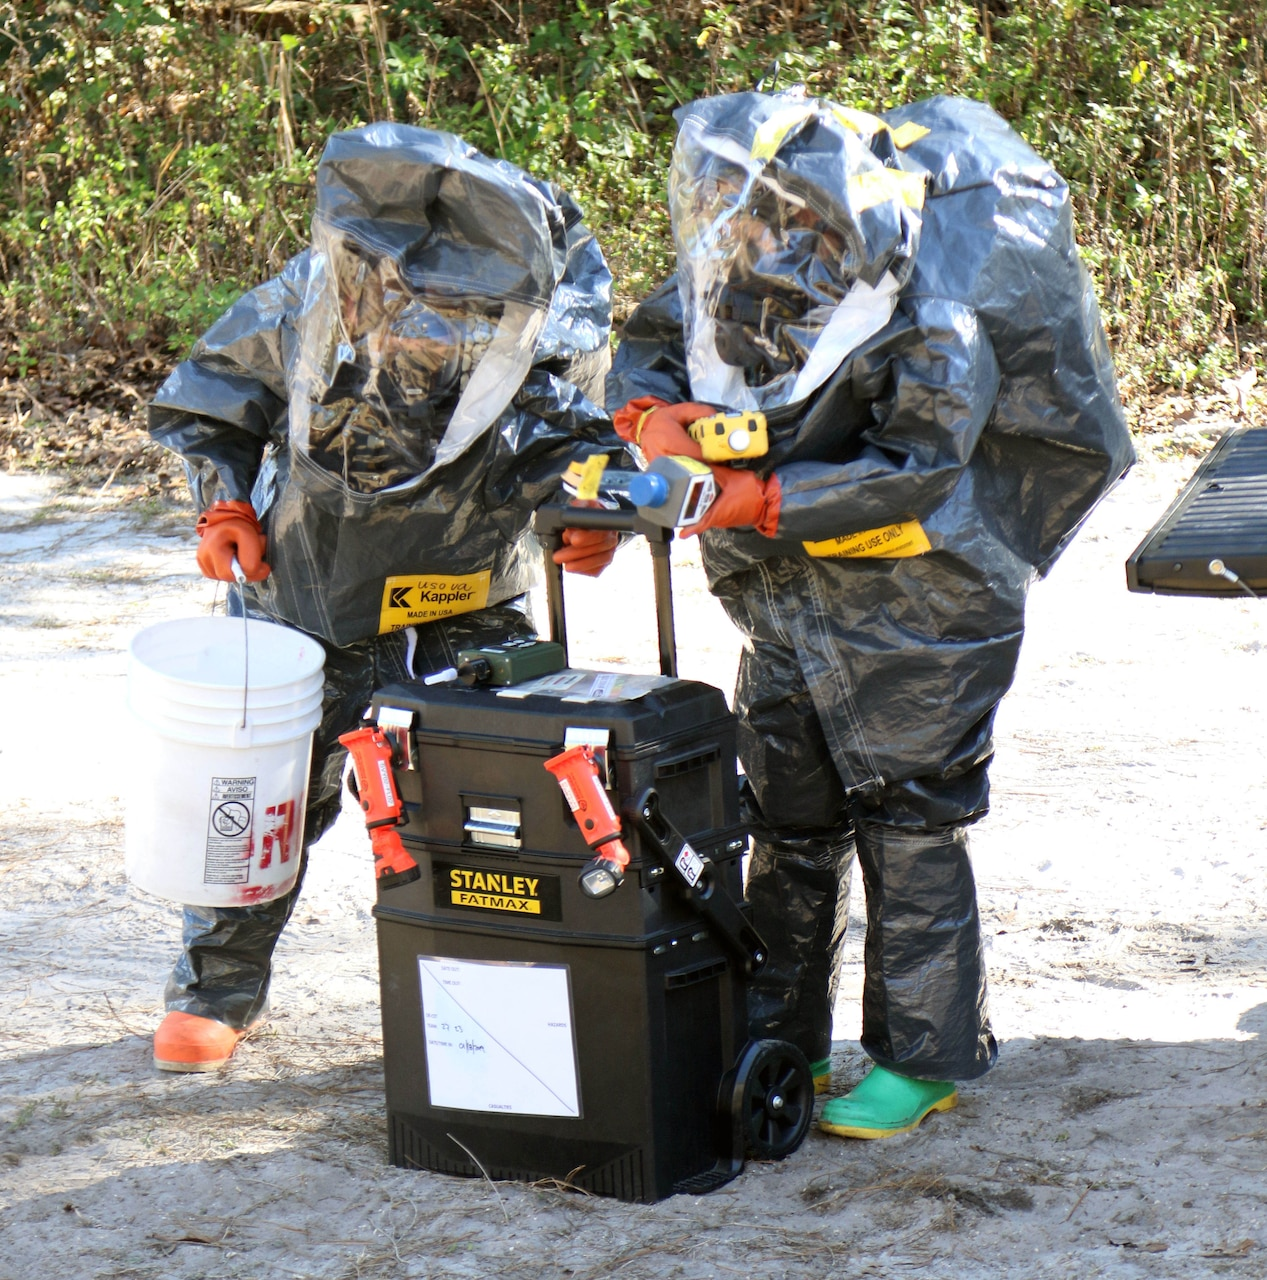 Two people in protective suits use a measuring tool.